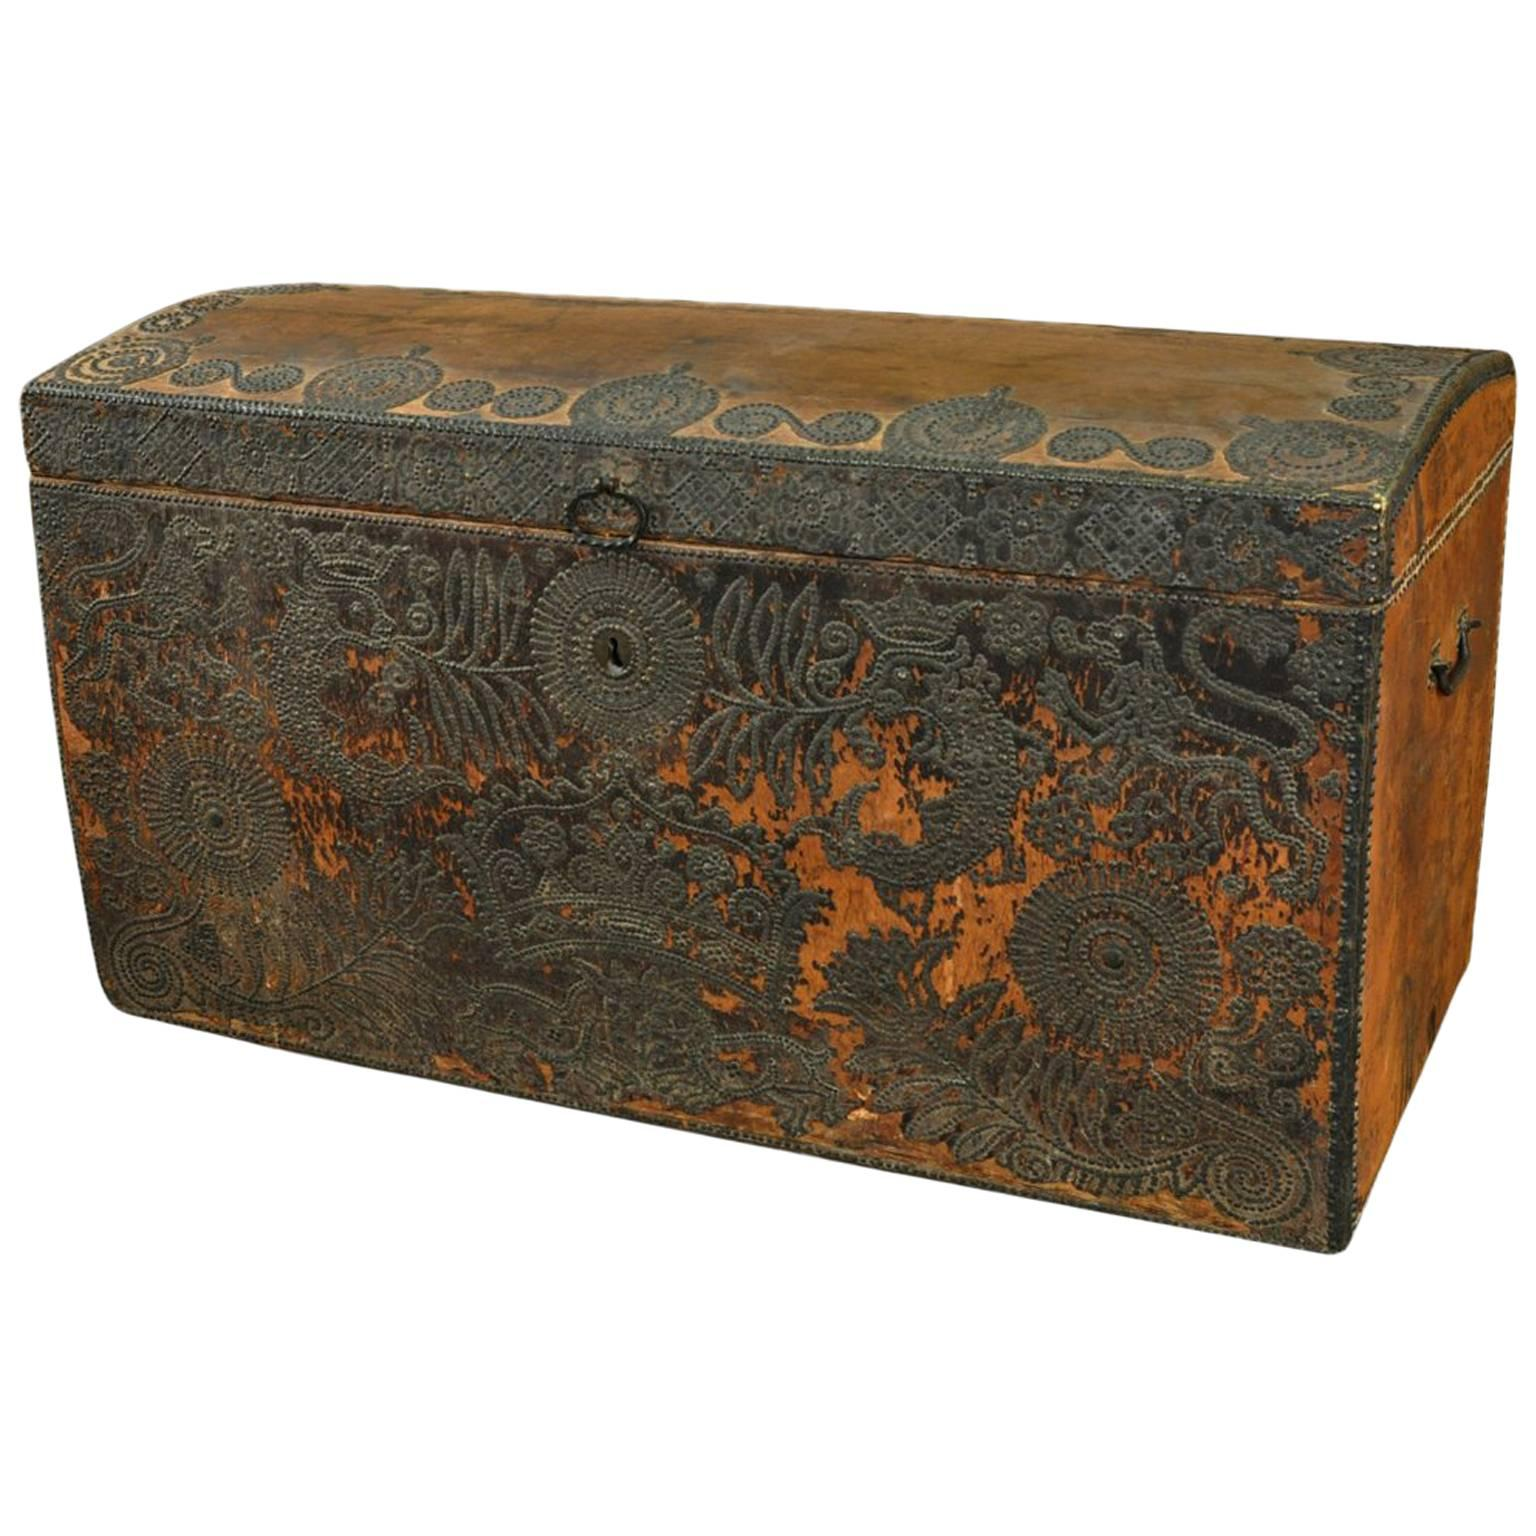 18th Century French Marriage Chest - Malle